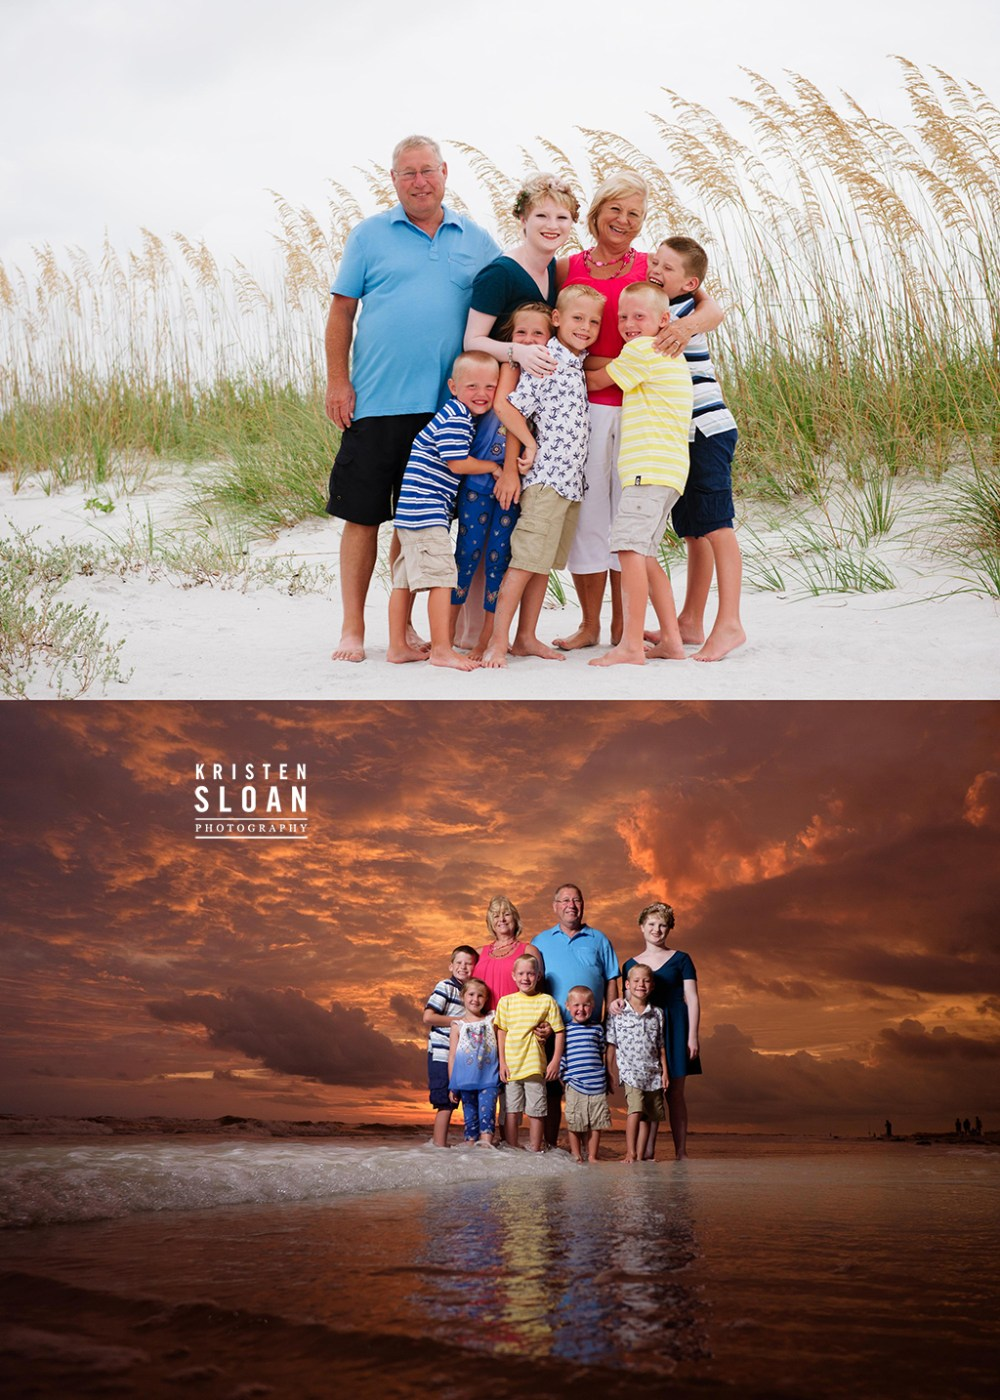 Sunset Vistas Treasure Island Family Portrait Photos by Kristen Sloan Photography